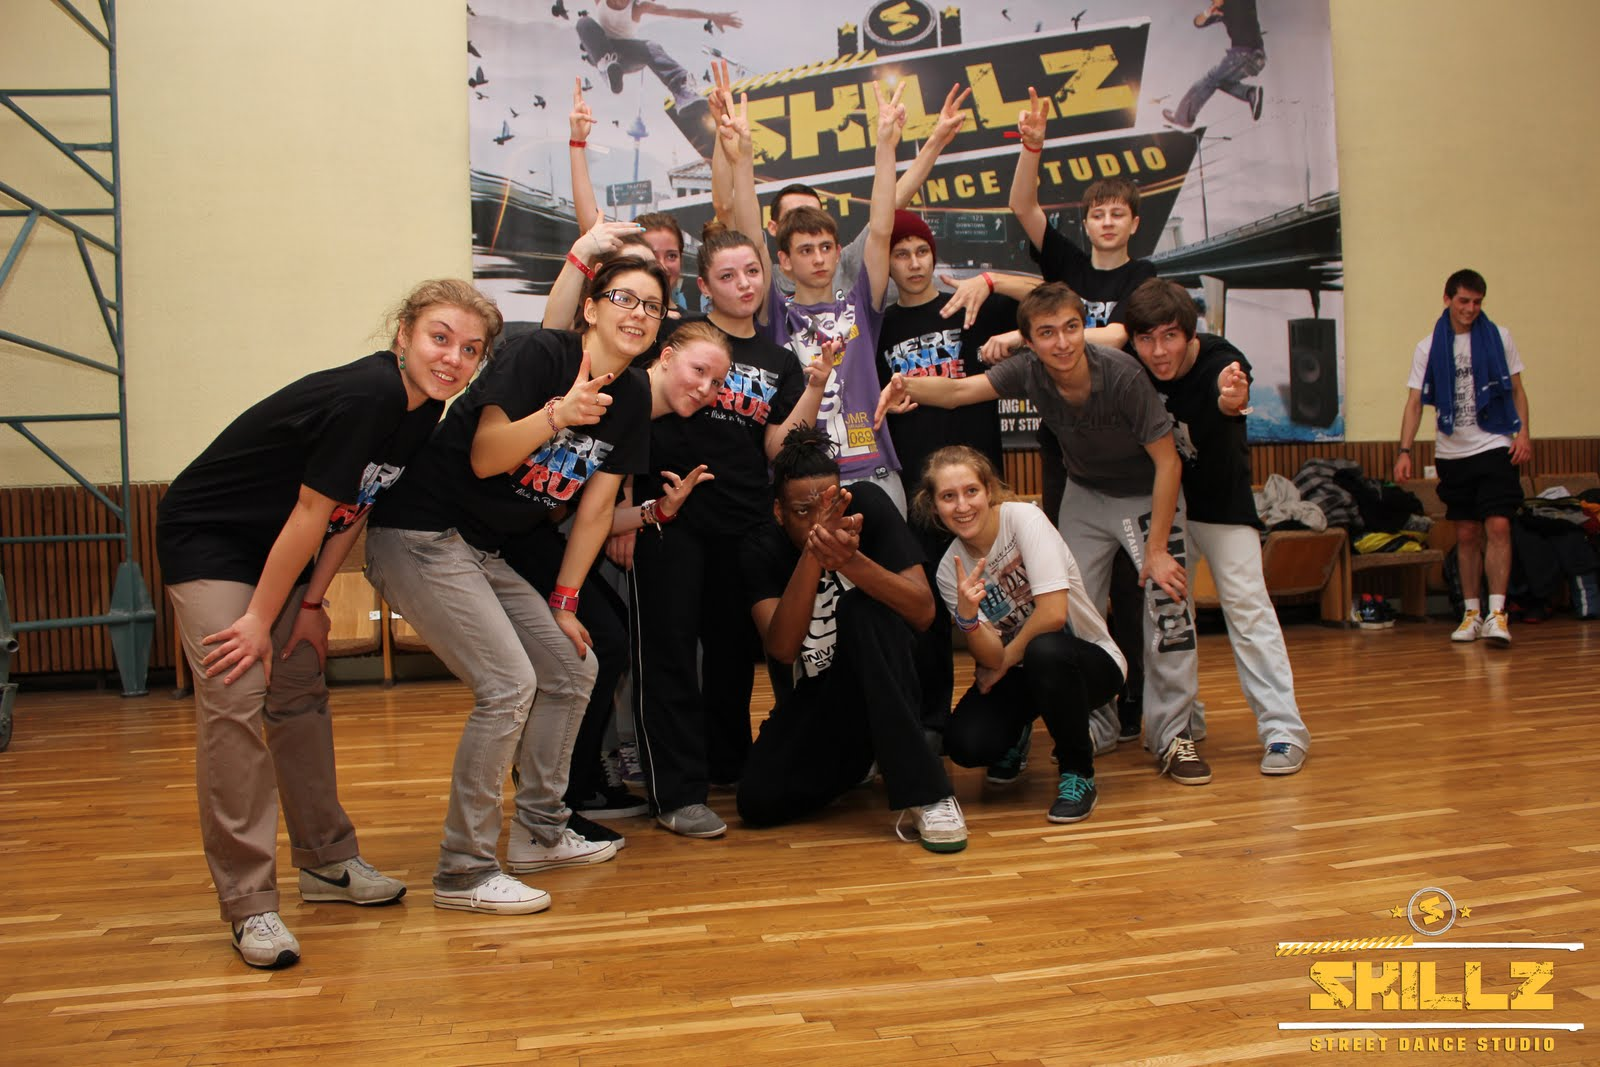 Kefton France Hip-Hop workshop - IMG_2289.jpg